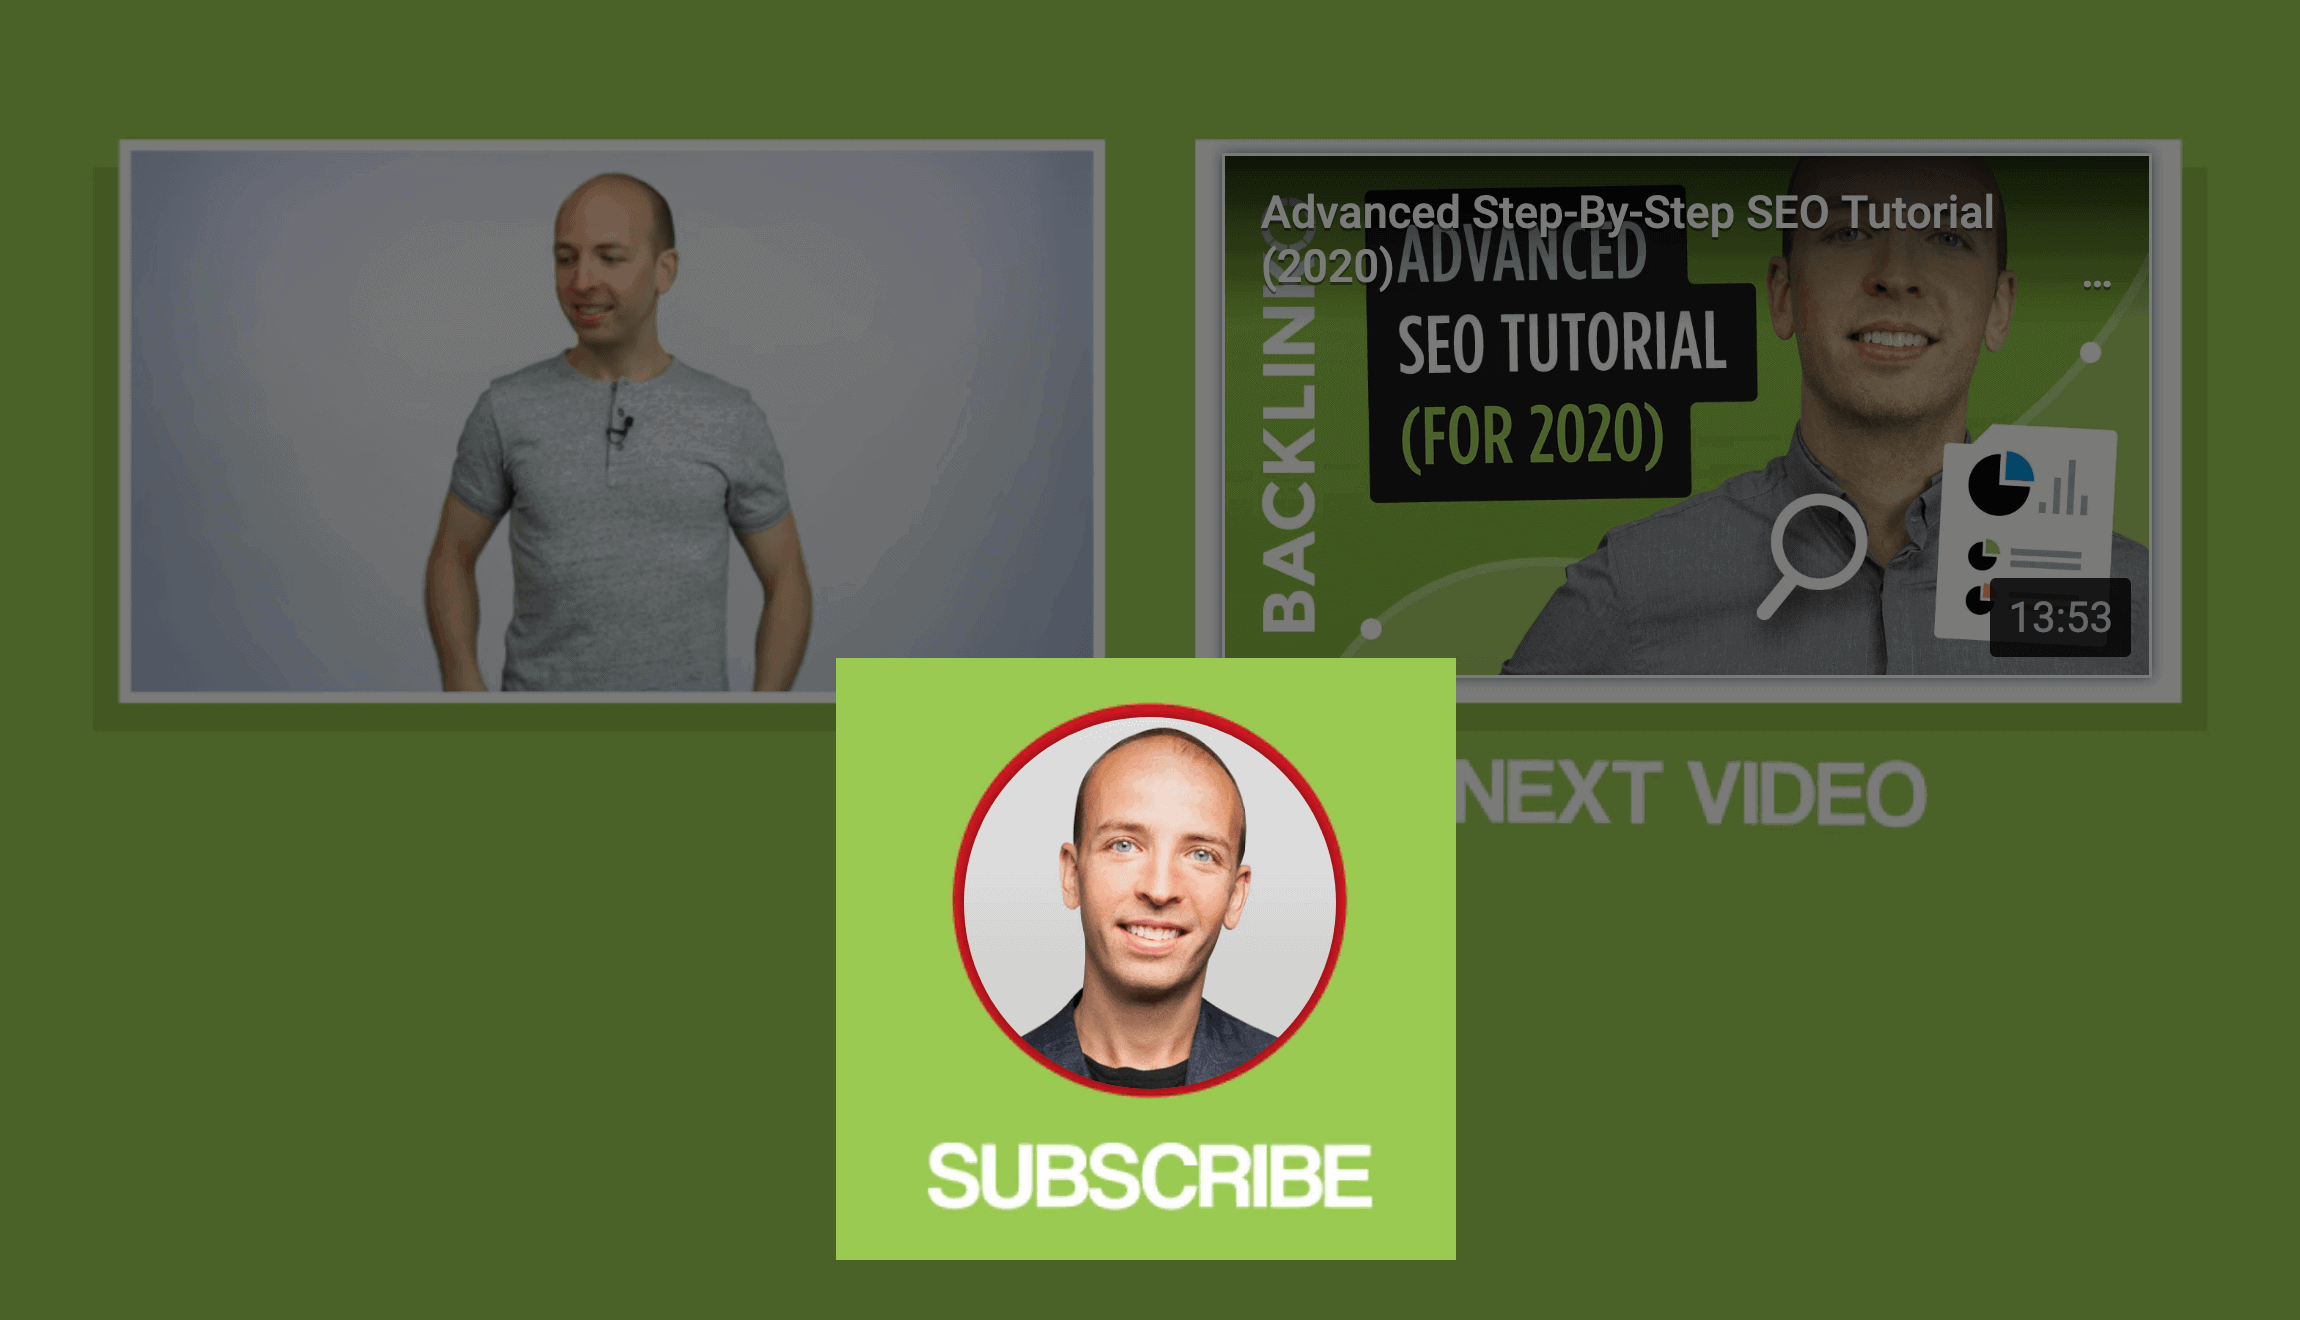 Backlinko – Subscribe button at end of video